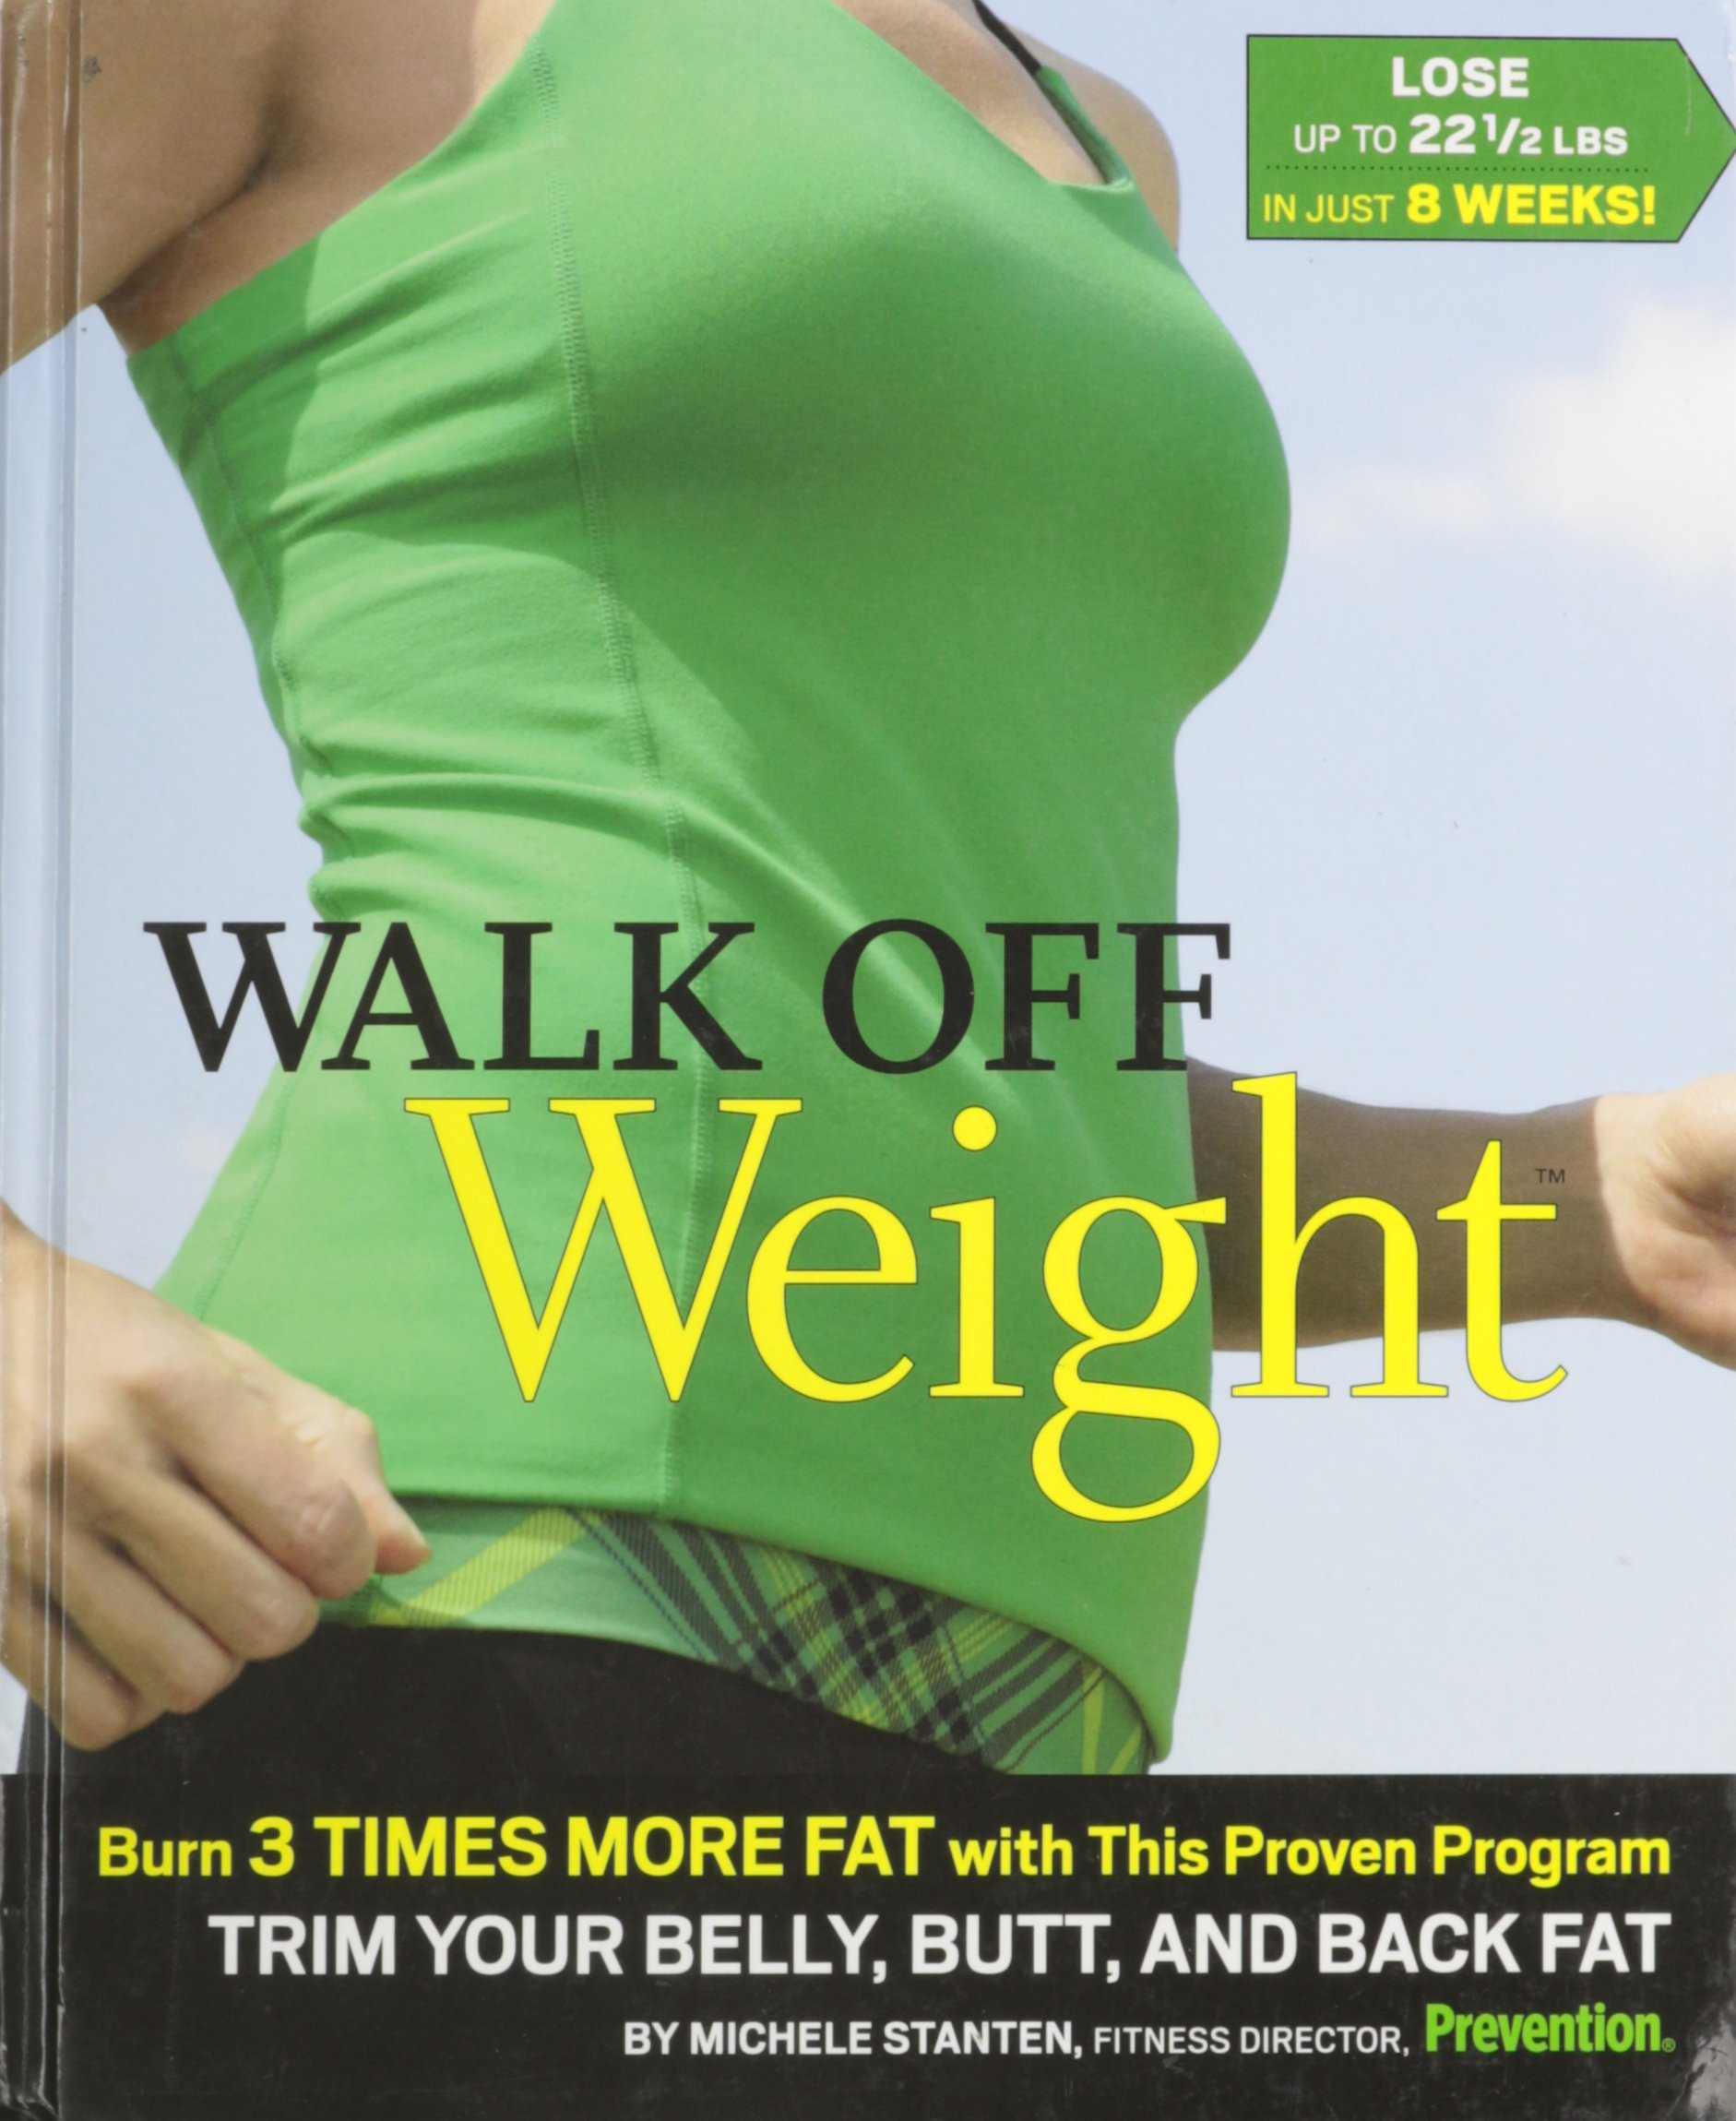 Walk Off Weight Burn 3 Times More Fat, with This Proven Program Trim Your Belly, Butt, and Back Fat pdf